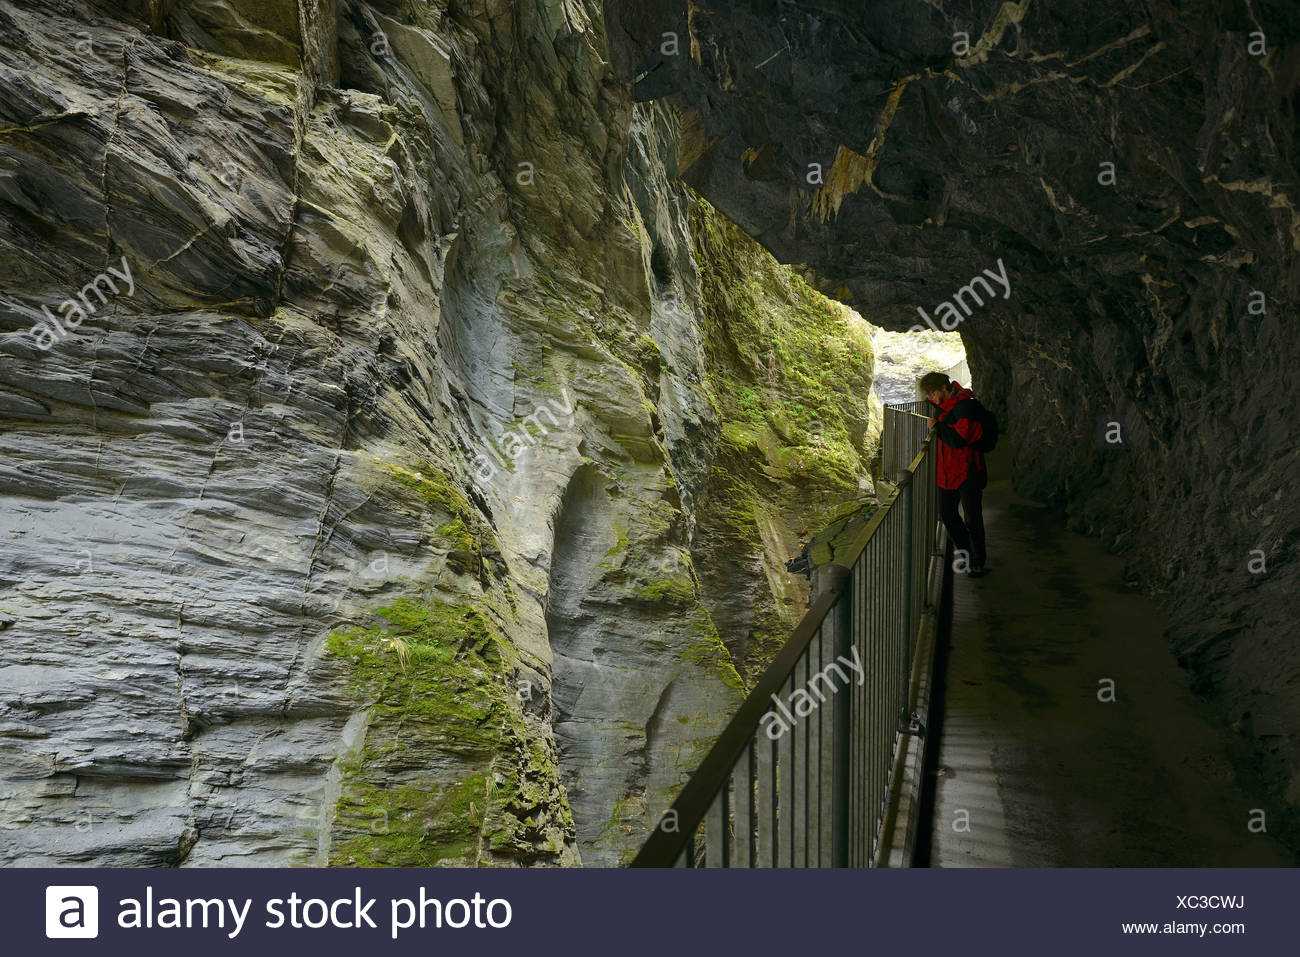 Tourist looking down into the Viamala gorge near Thusis, canton of Grisons, Switzerland, Europe - Stock Image